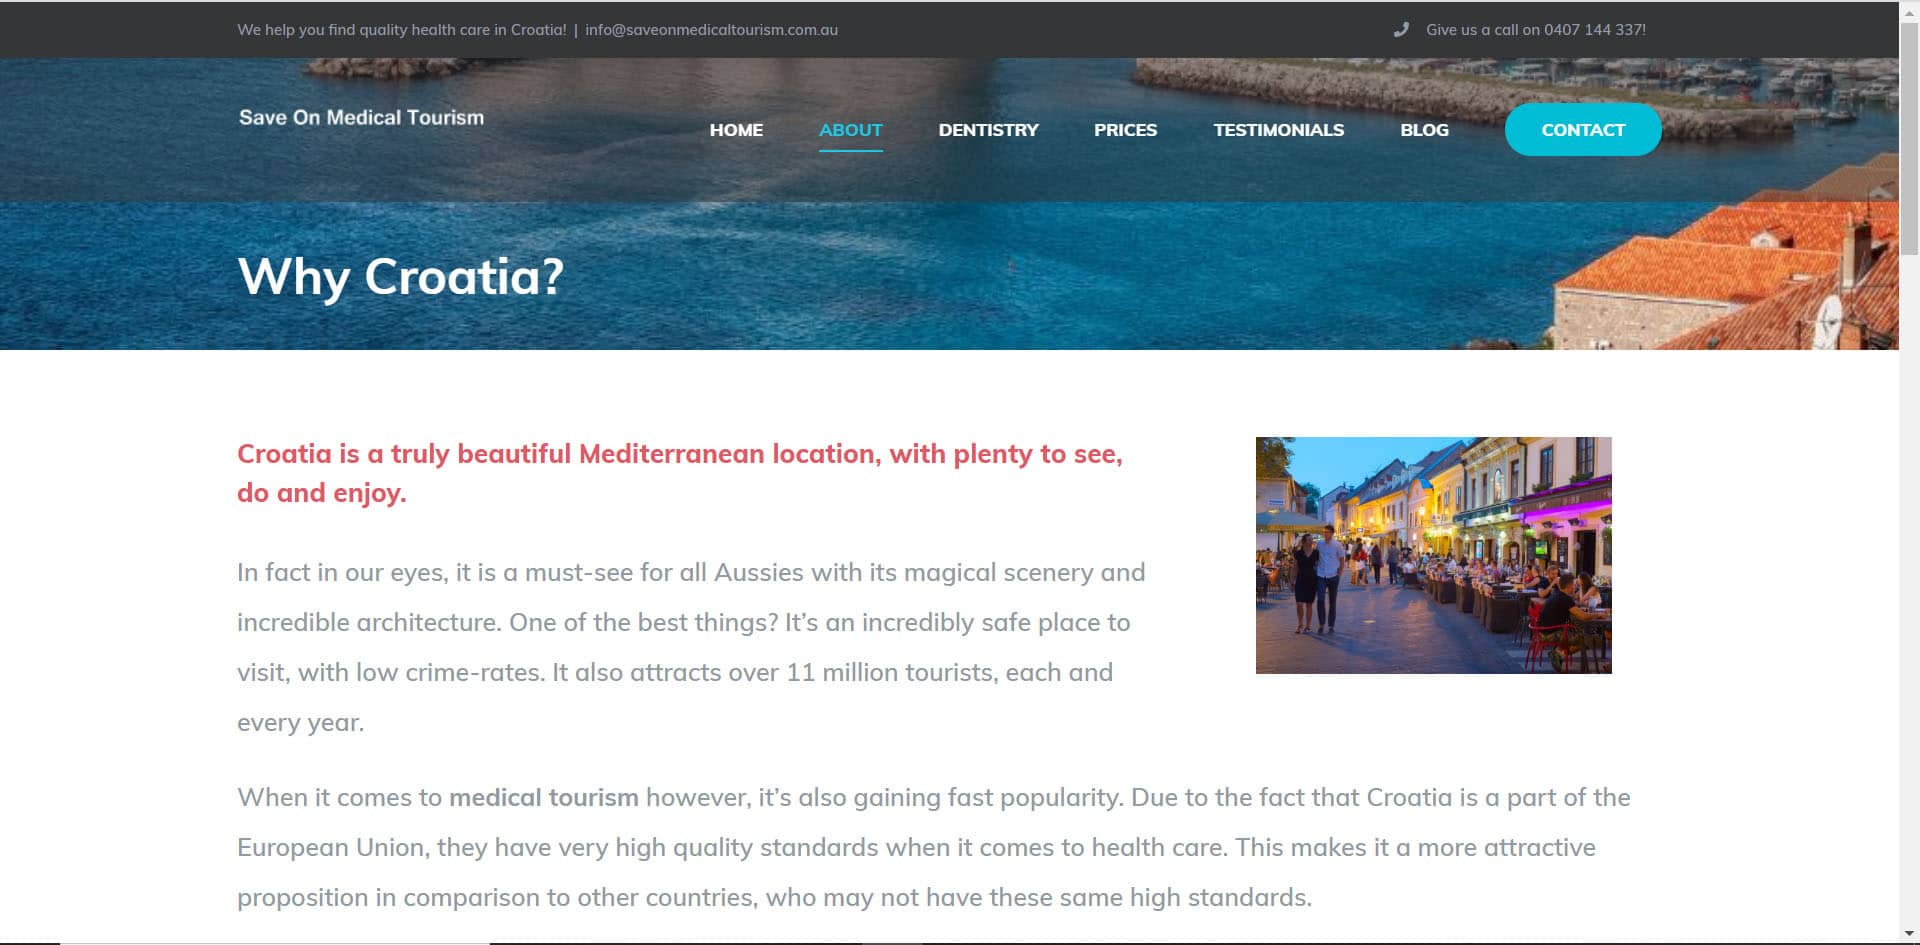 Save on Medical Tourism - Why Croatia (Website Copywriting)